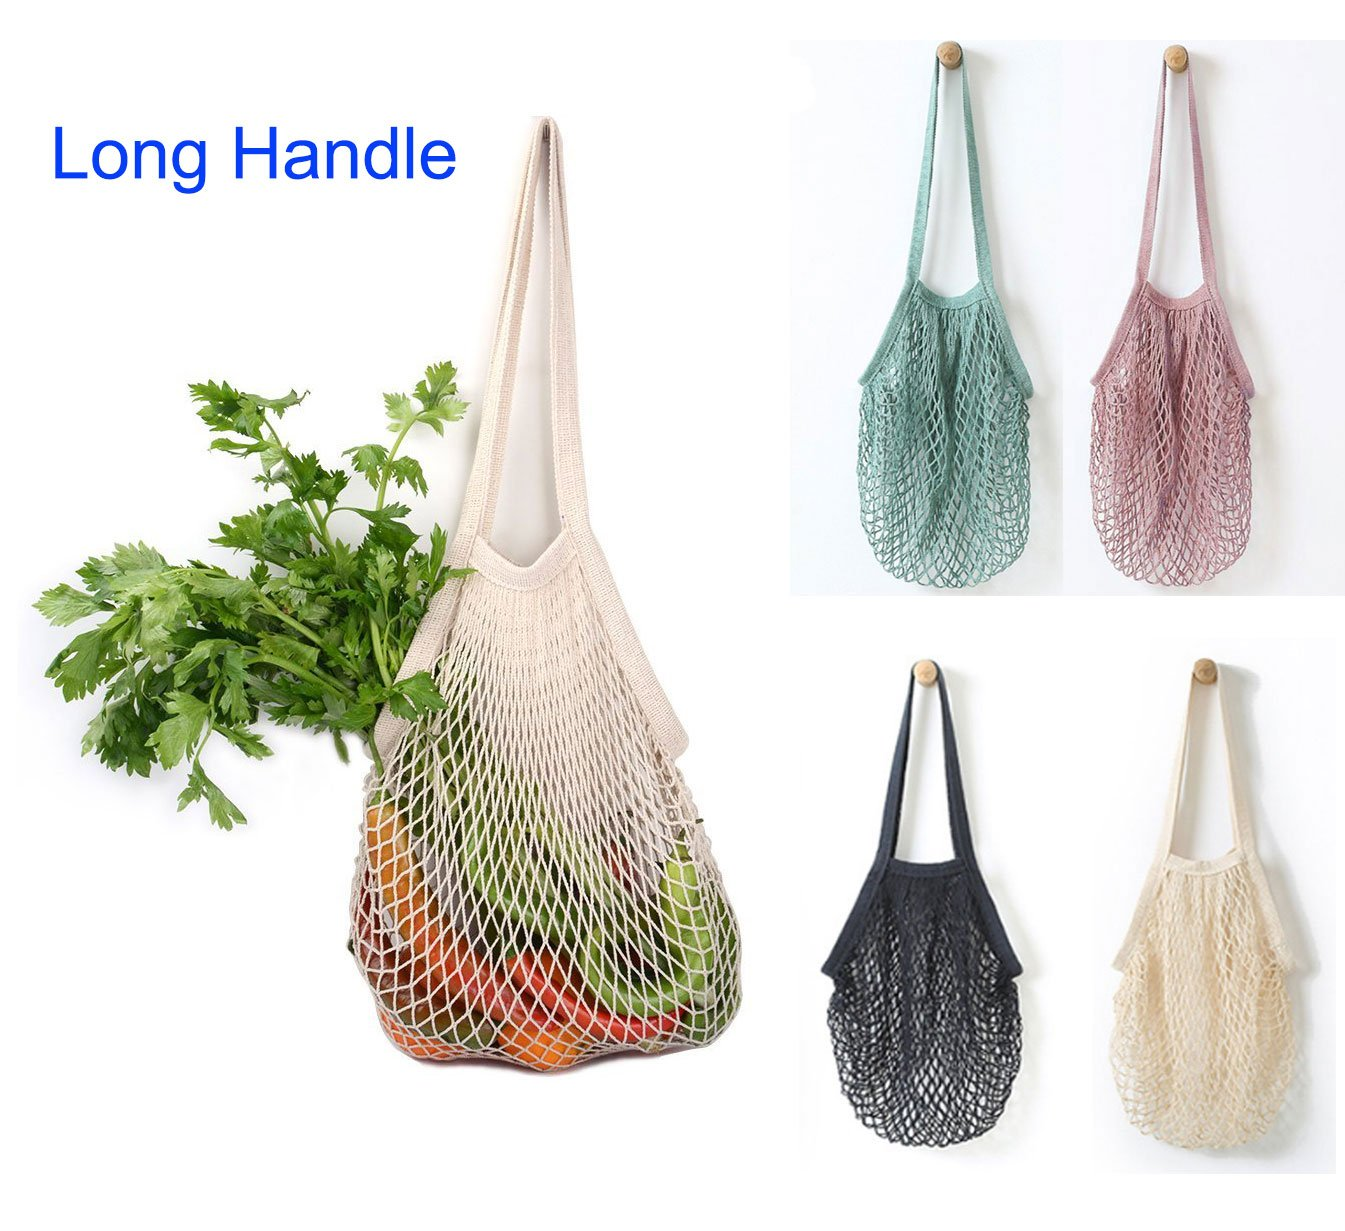 Sysly Pack of 4 Cotton Reusable Net Shopping Tote String Bag Organizer for Grocery Shopping & Beach, Storage, Fruit, Vegetable and Toys -Lightweight & Sturdy Mesh Produce bag (Long Handle)